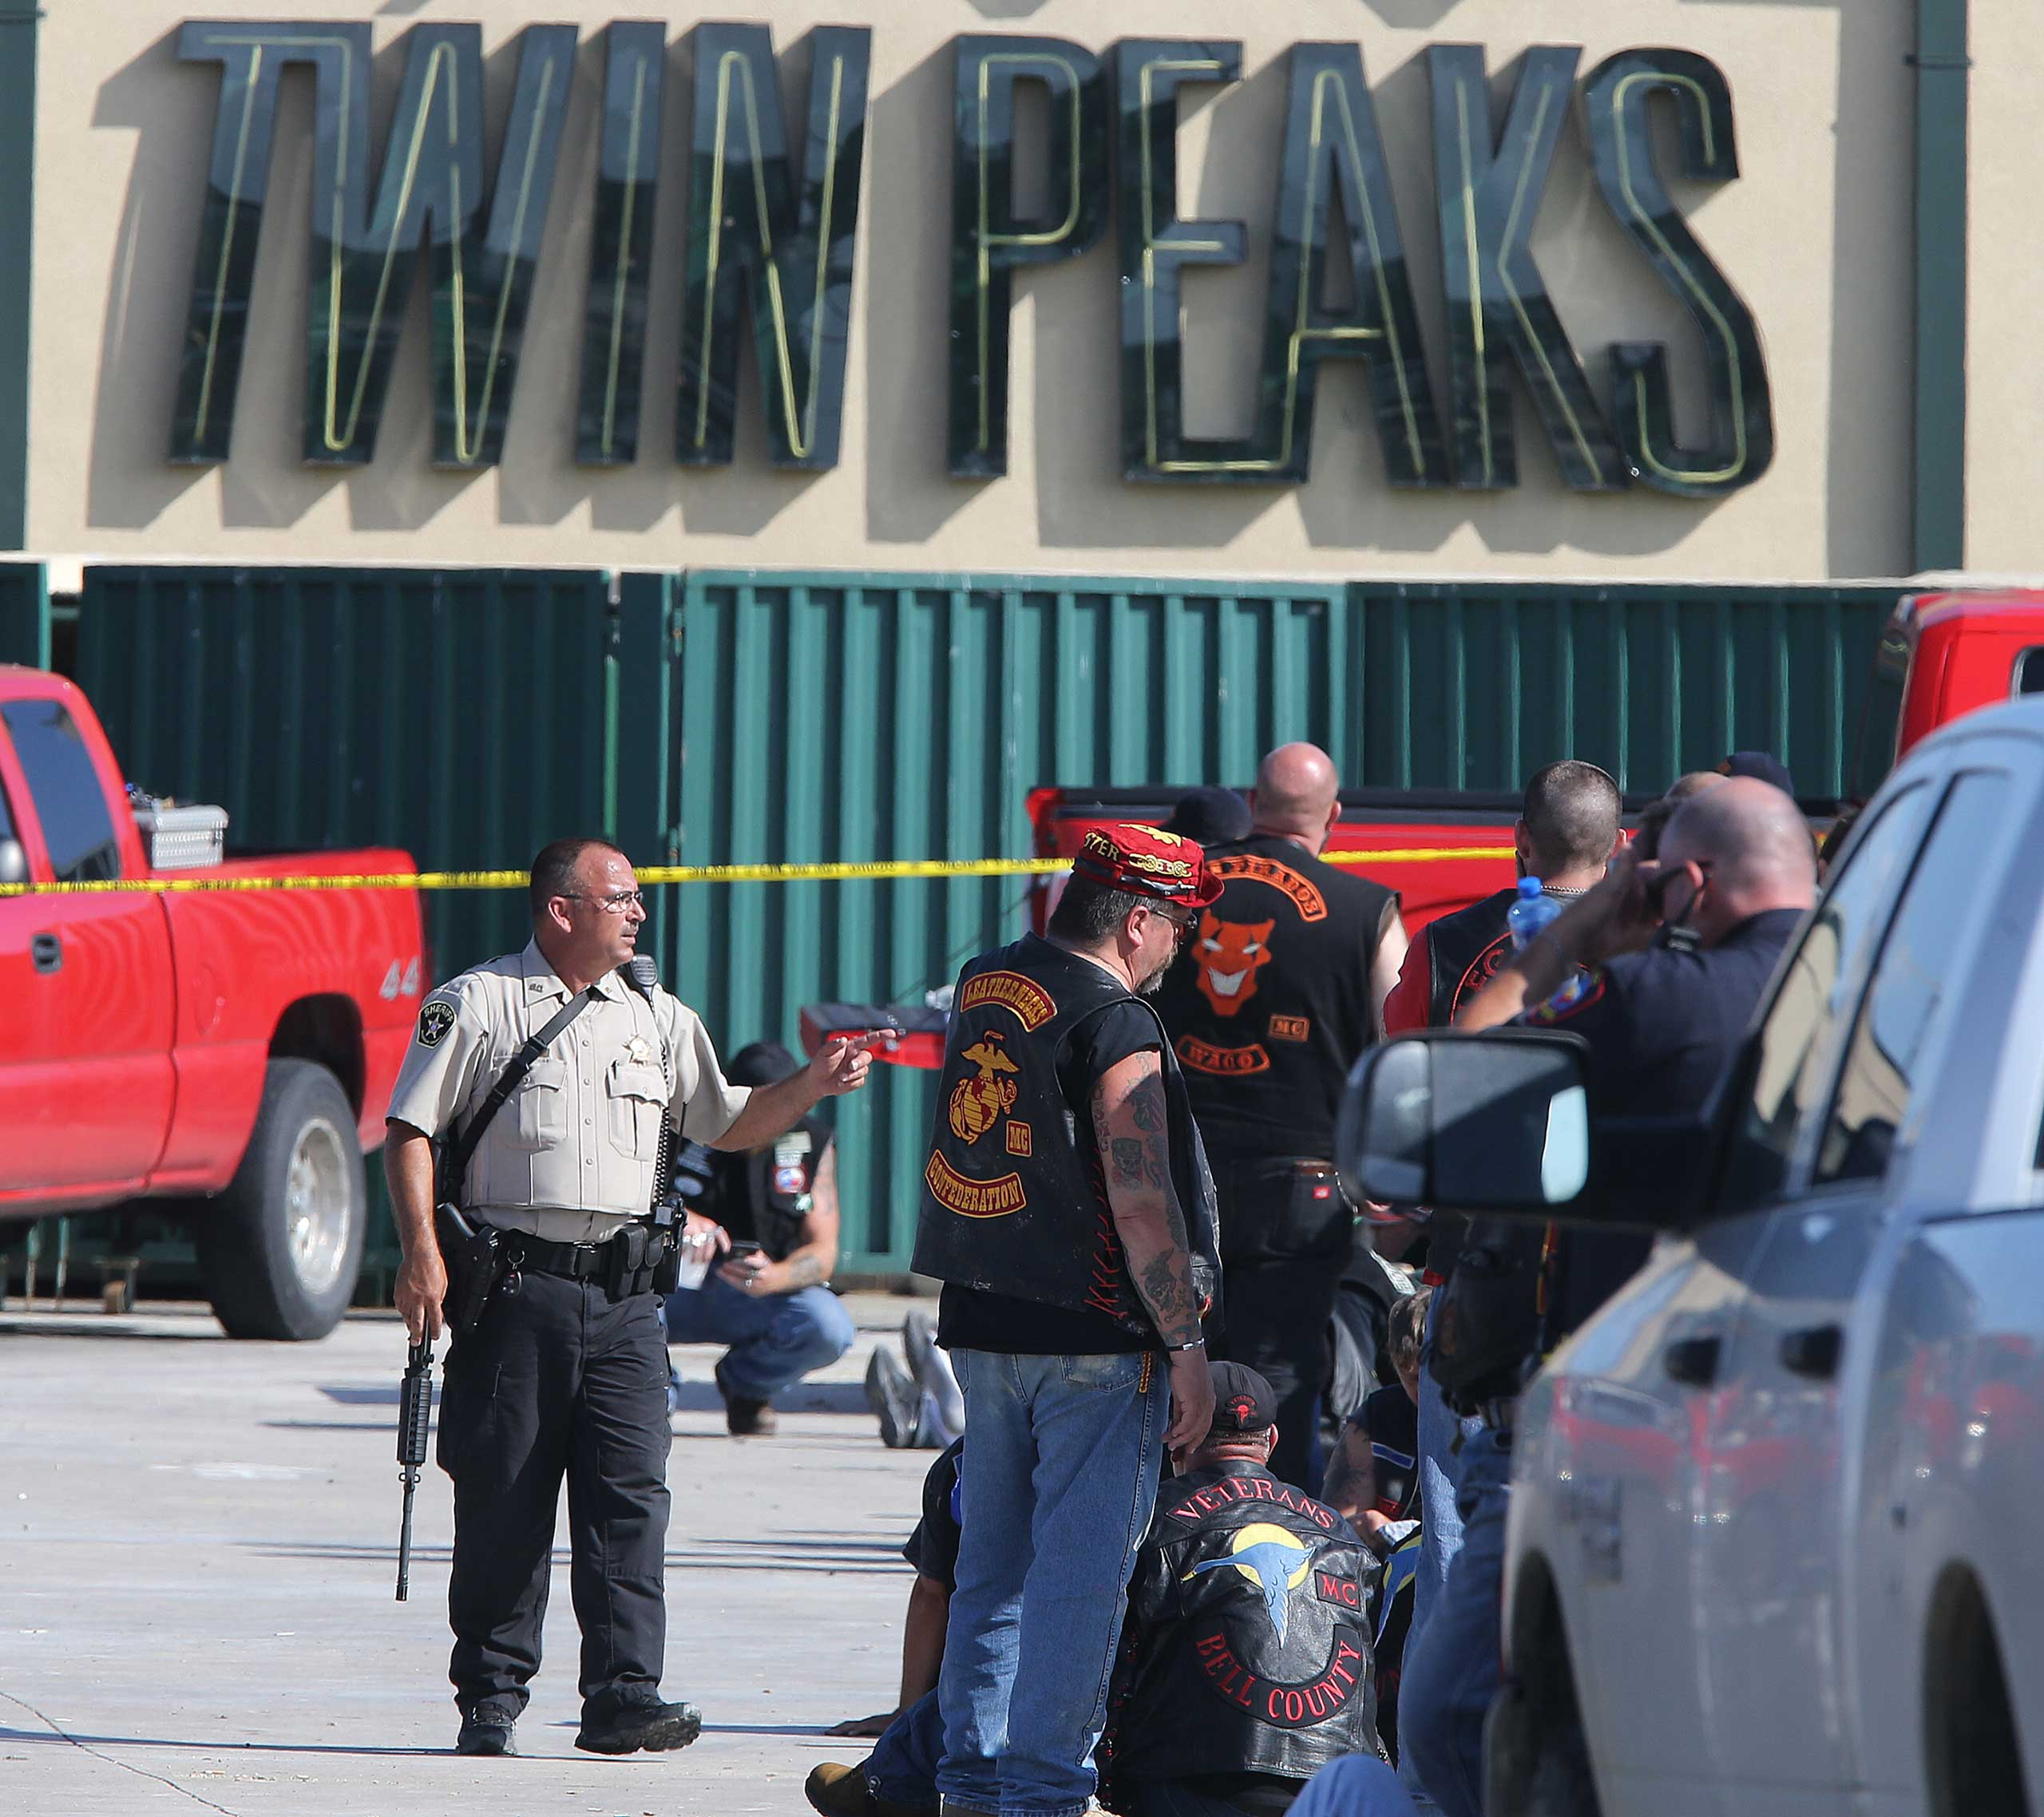 Authorities investigate a shooting in the parking lot of the Twin Peaks restaurant in Waco, Texas on May 17, 2015.